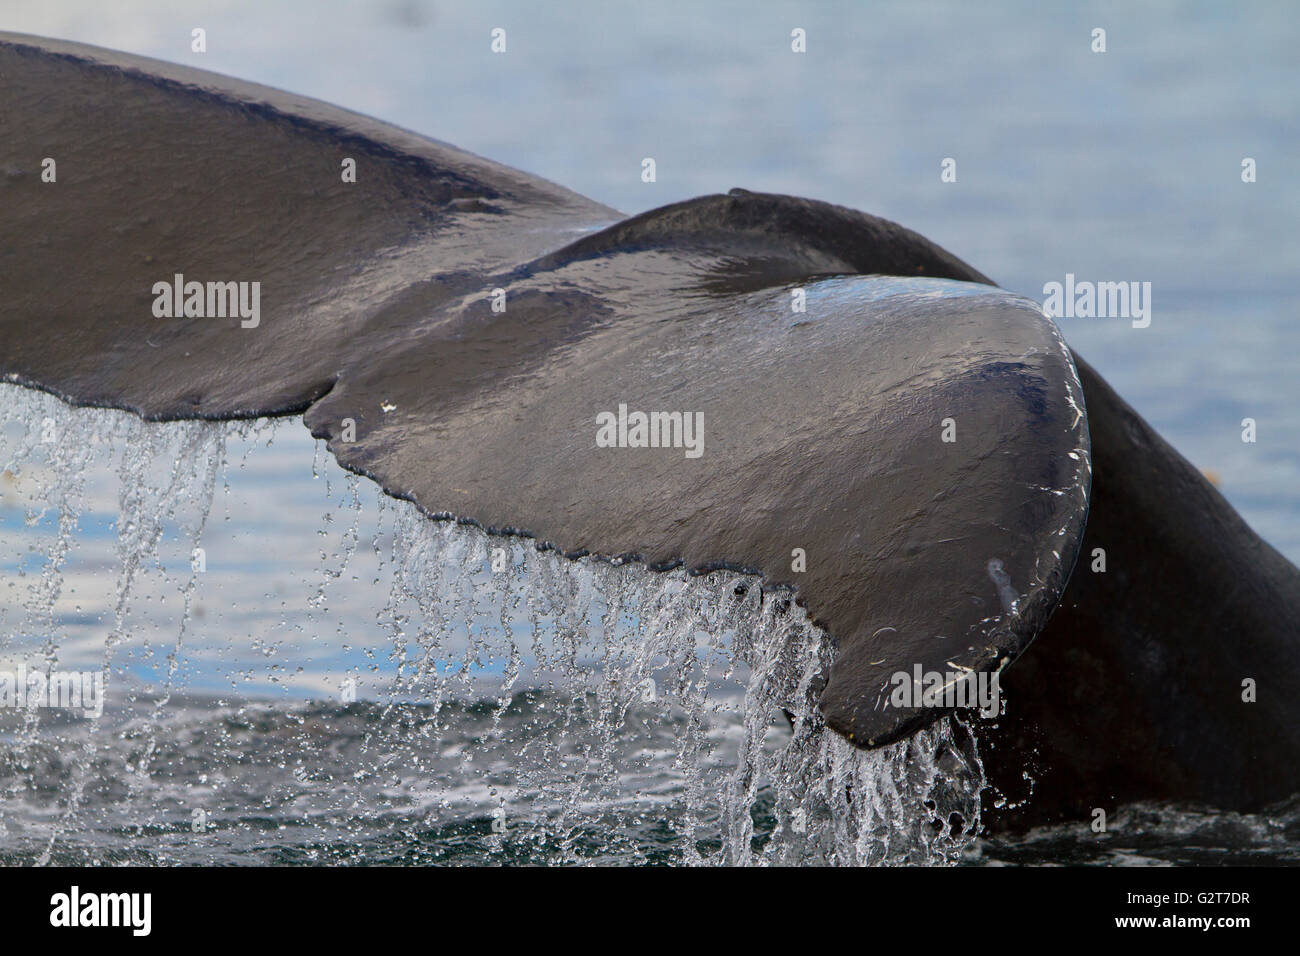 Humpback Whale tail close up with water running off, Knight Inlet, British Columbia, Canada. - Stock Image